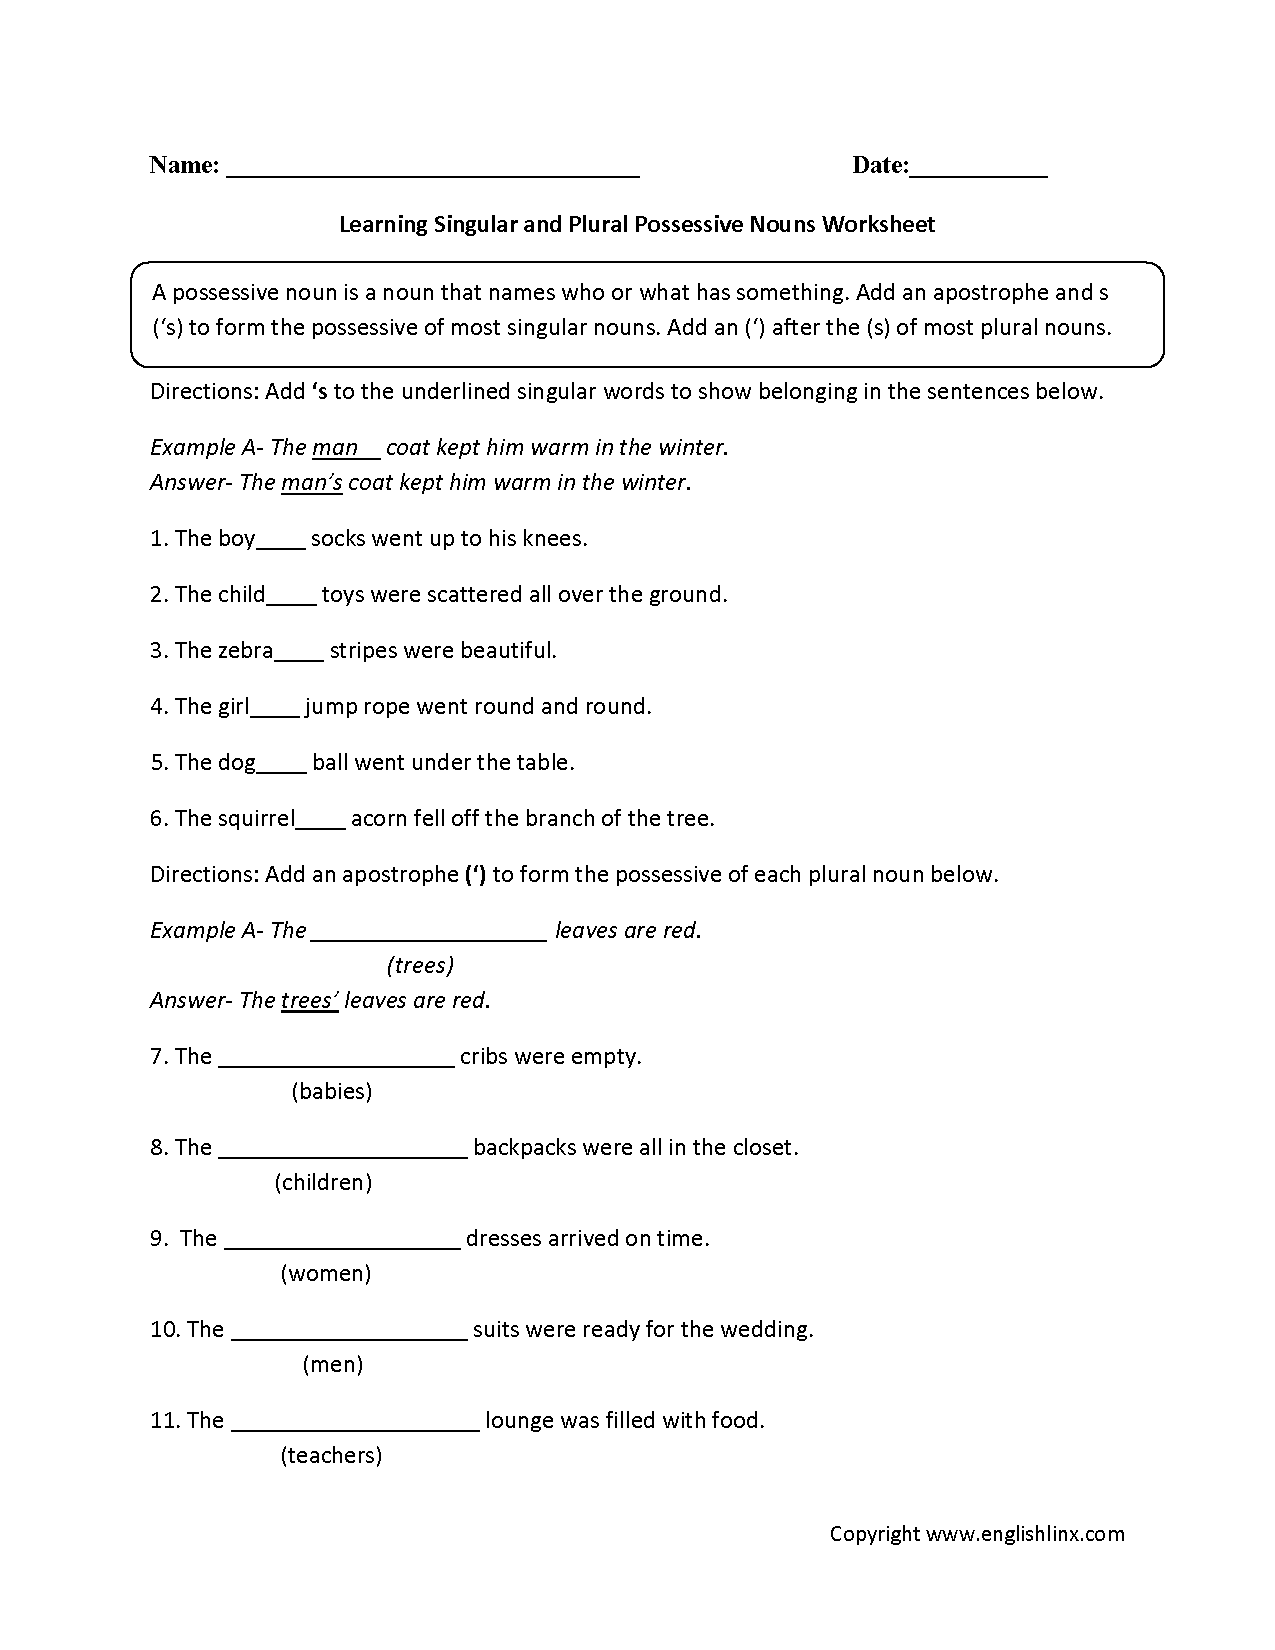 Worksheets Noun Worksheets For 1st Grade nouns worksheets possessive worksheets